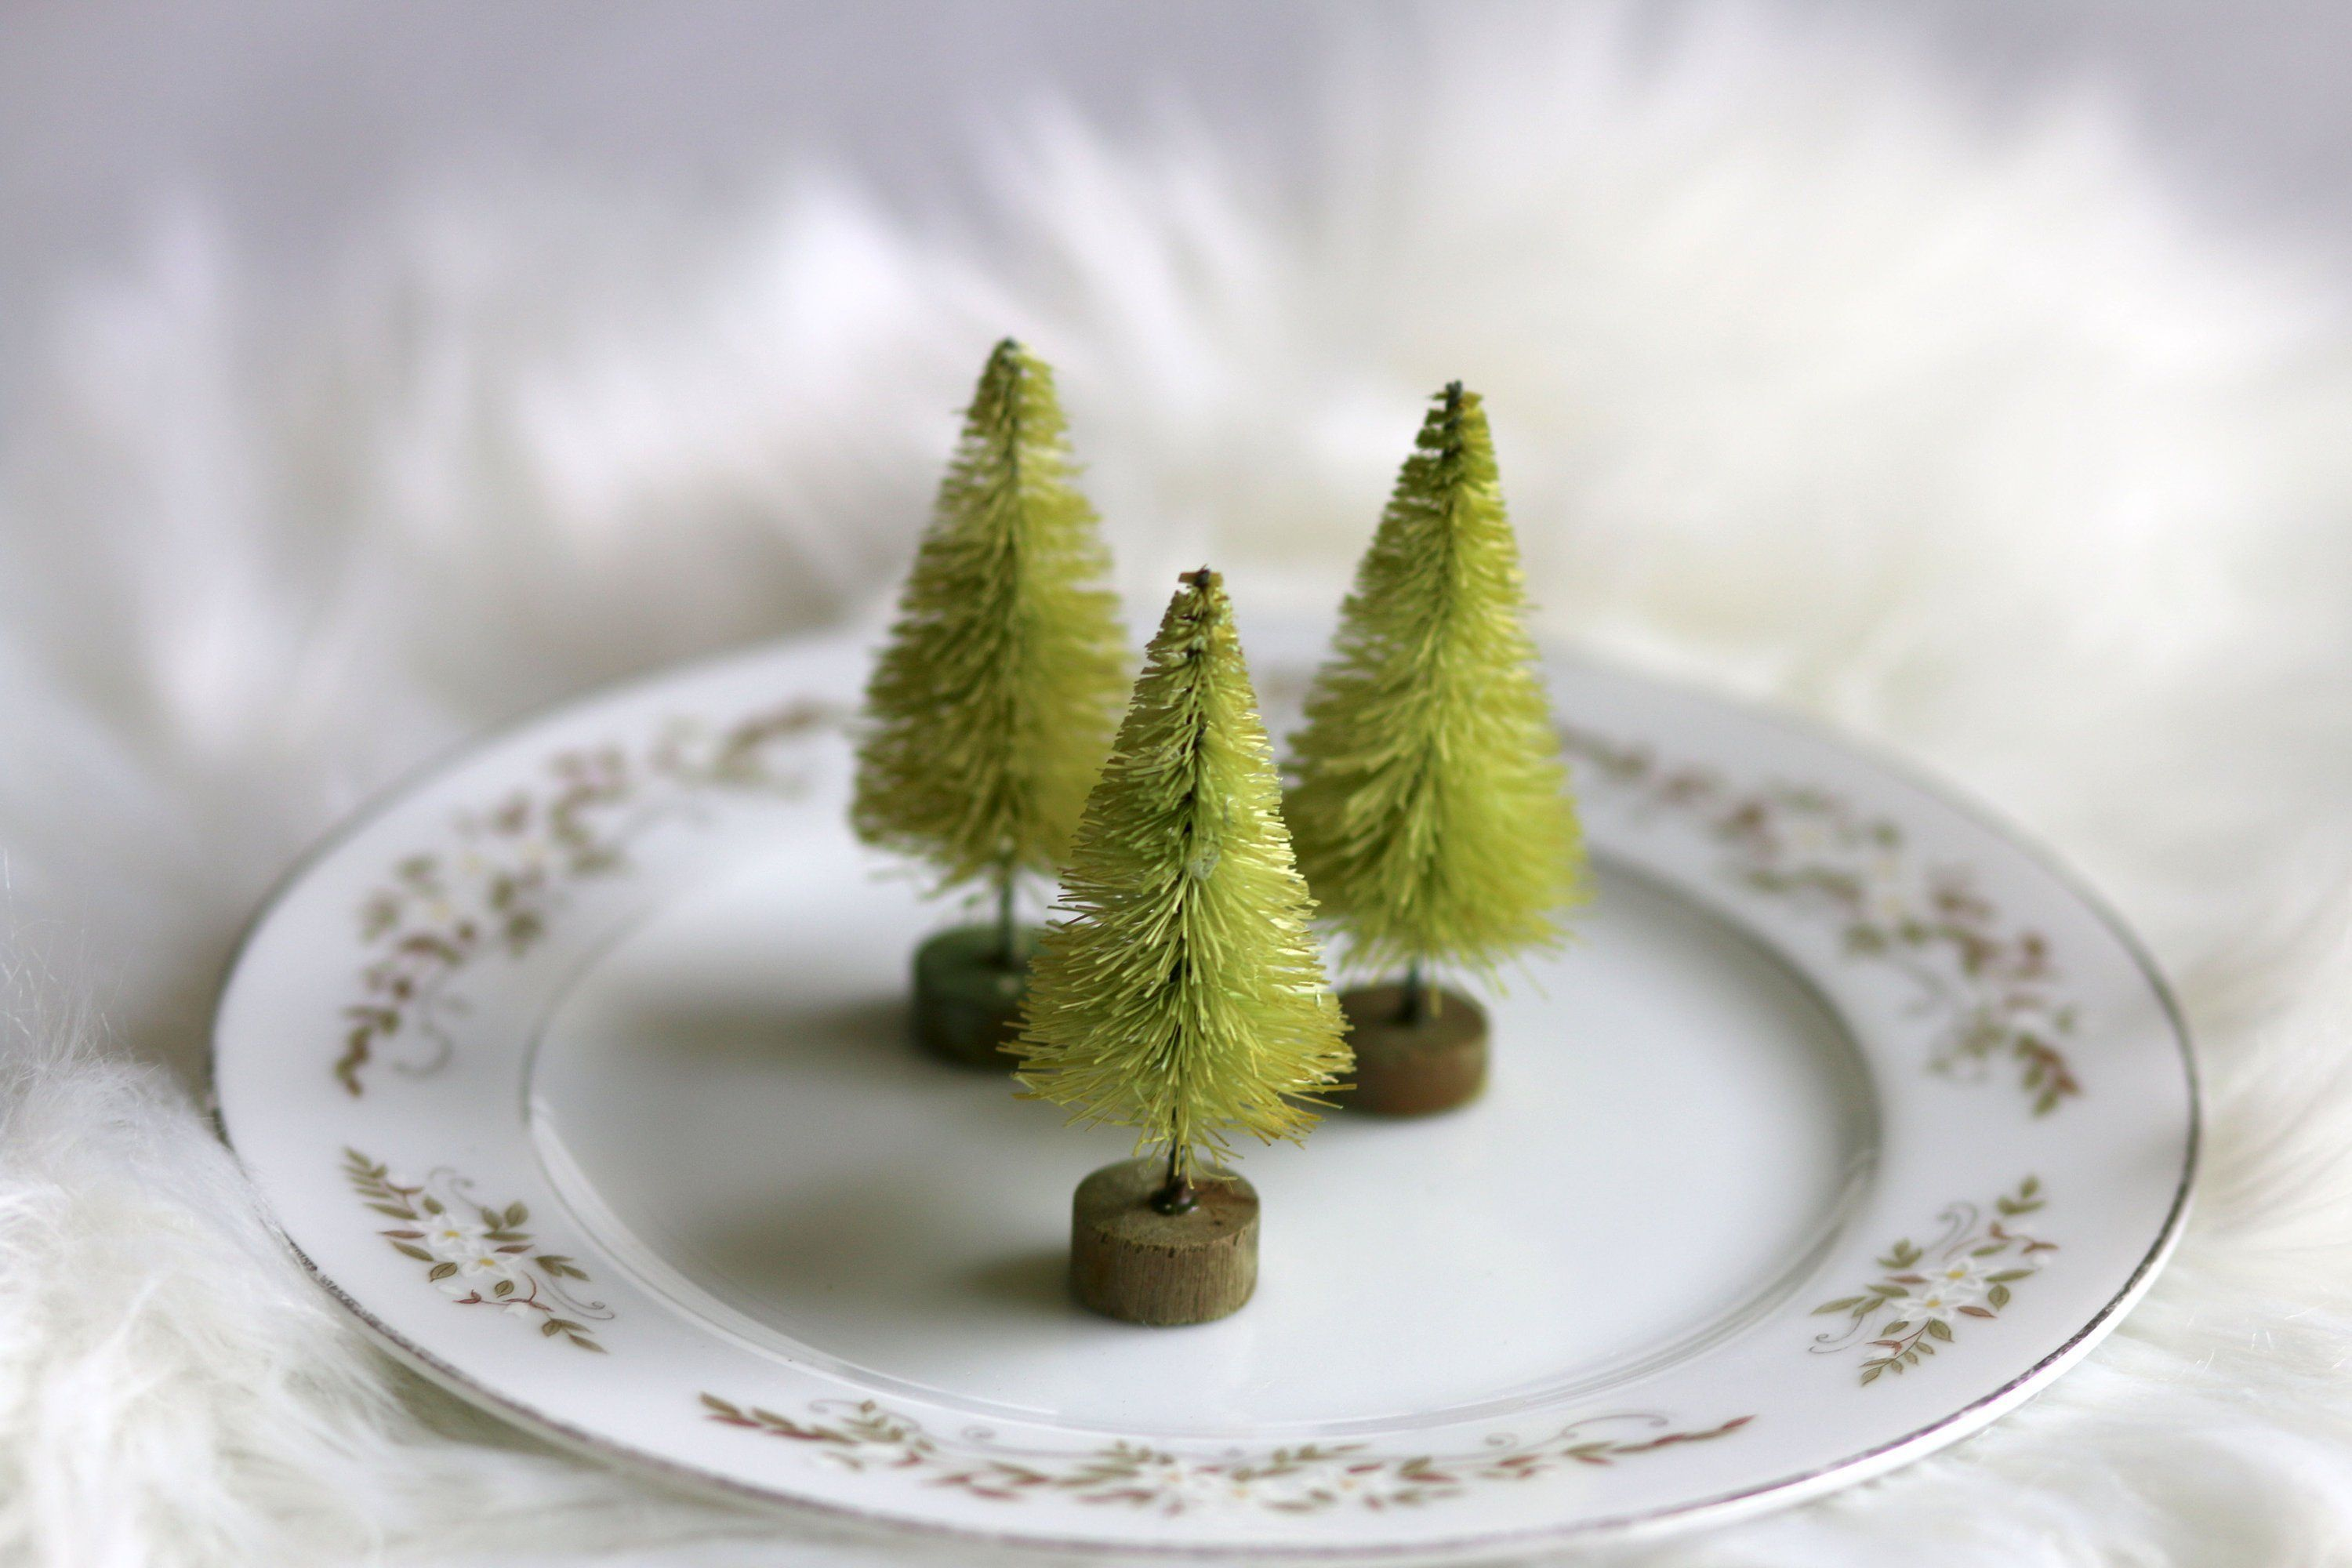 Lime Bottle Brush Trees Set Of 3 Darling Small 2 5 Inch Trees For Christmas Village Dioramas Diy Snow With Images Diy Christmas Tree Christmas Tree Village Christmas Diy